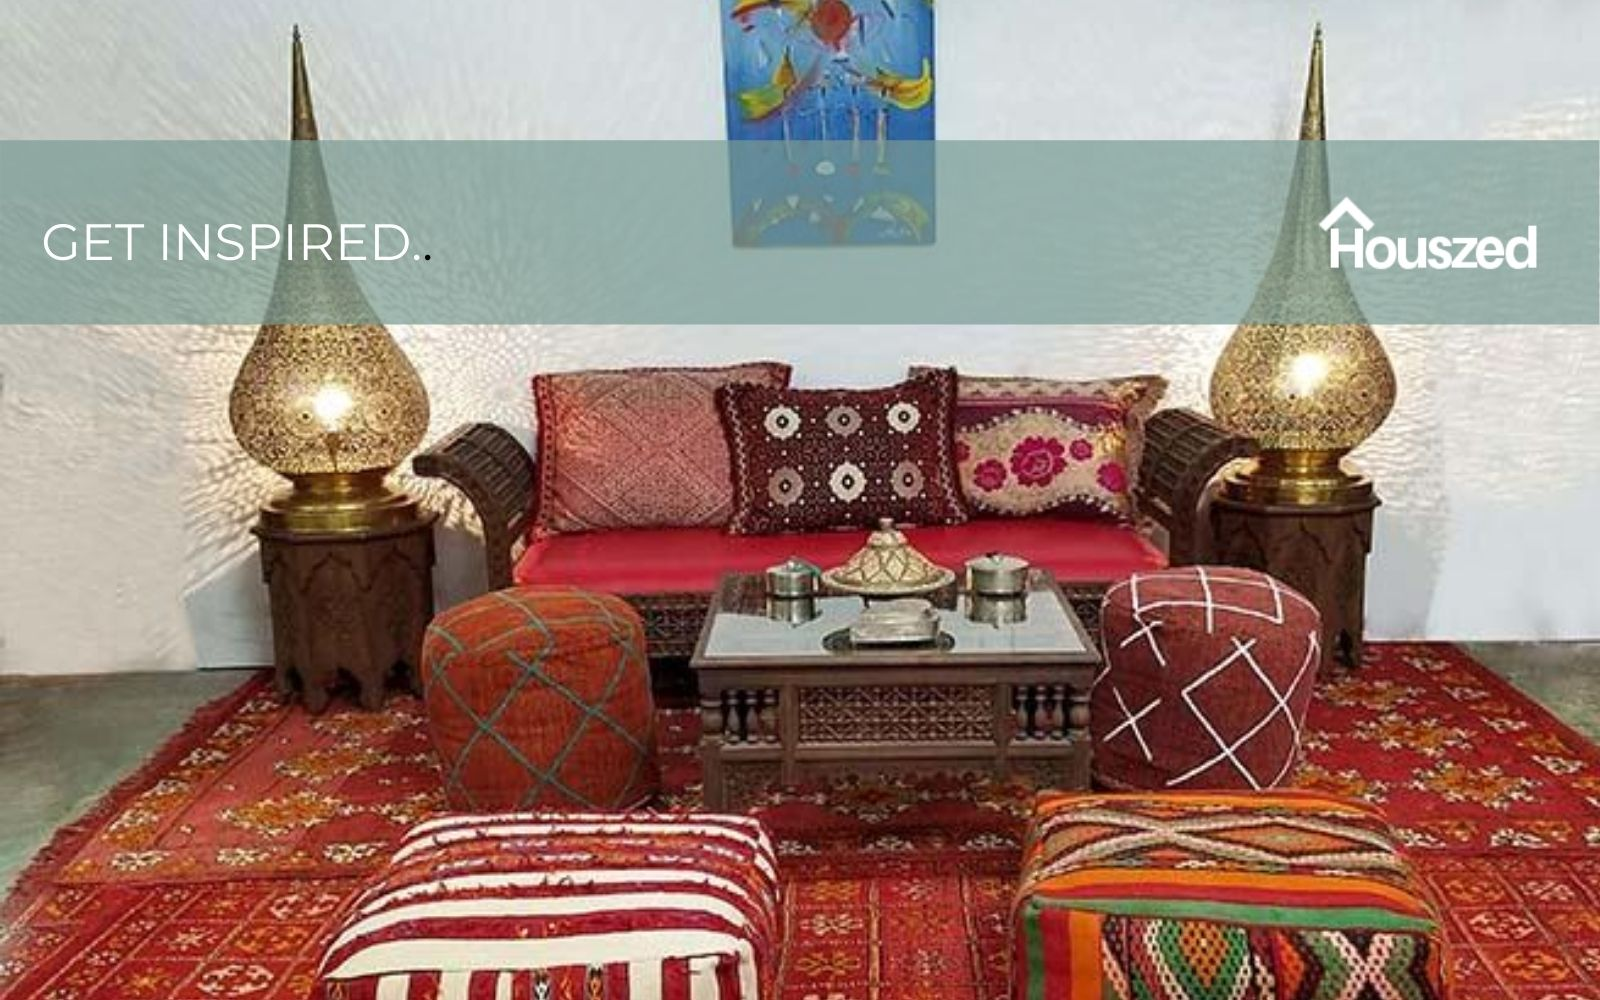 17 Moroccan Living Room Ideas To Get The Look In 2020 Houszed